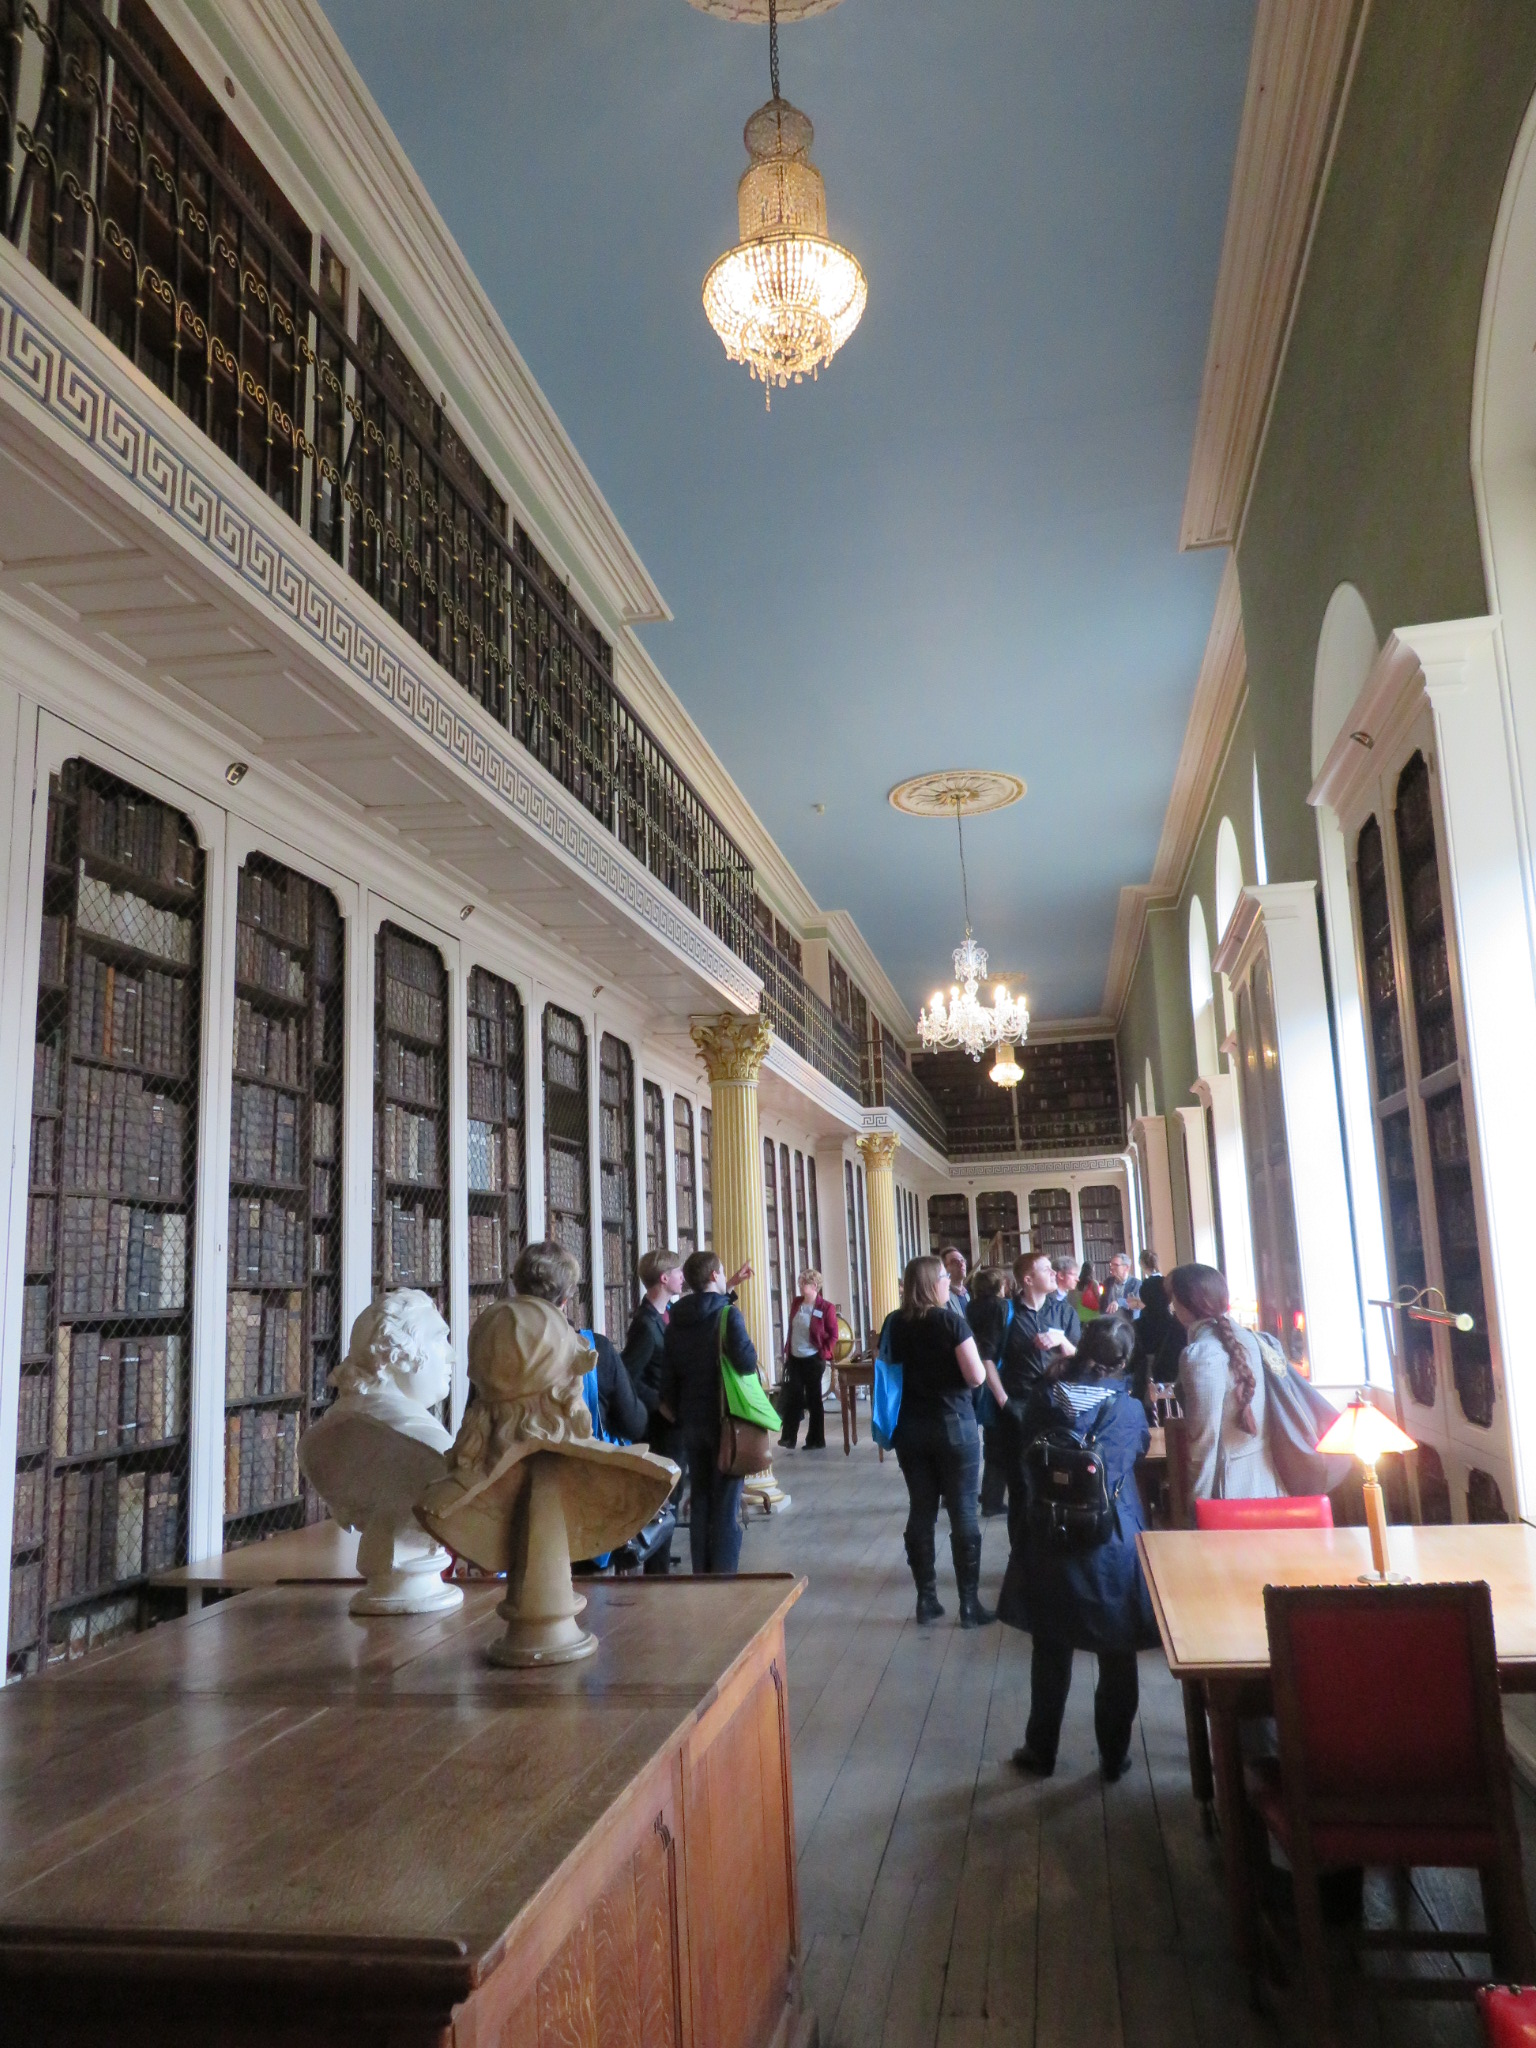 A photograph of the early-modern lower library of Worcester College, including busts and galleries.